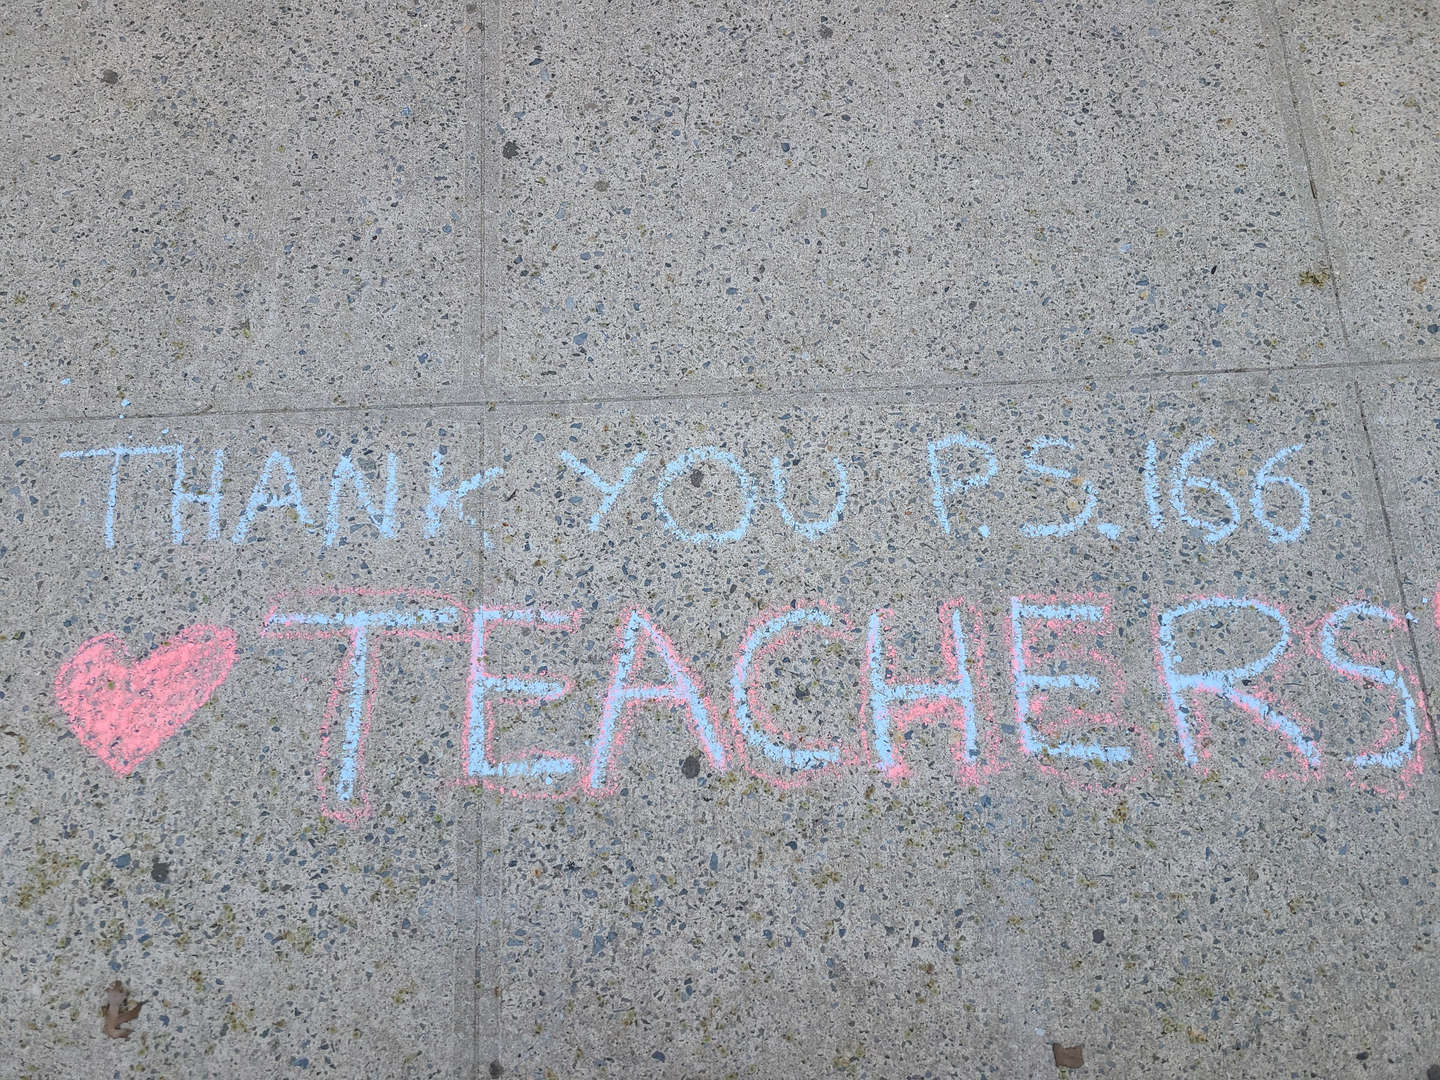 Thank you teachers message in chalk on sidewalk